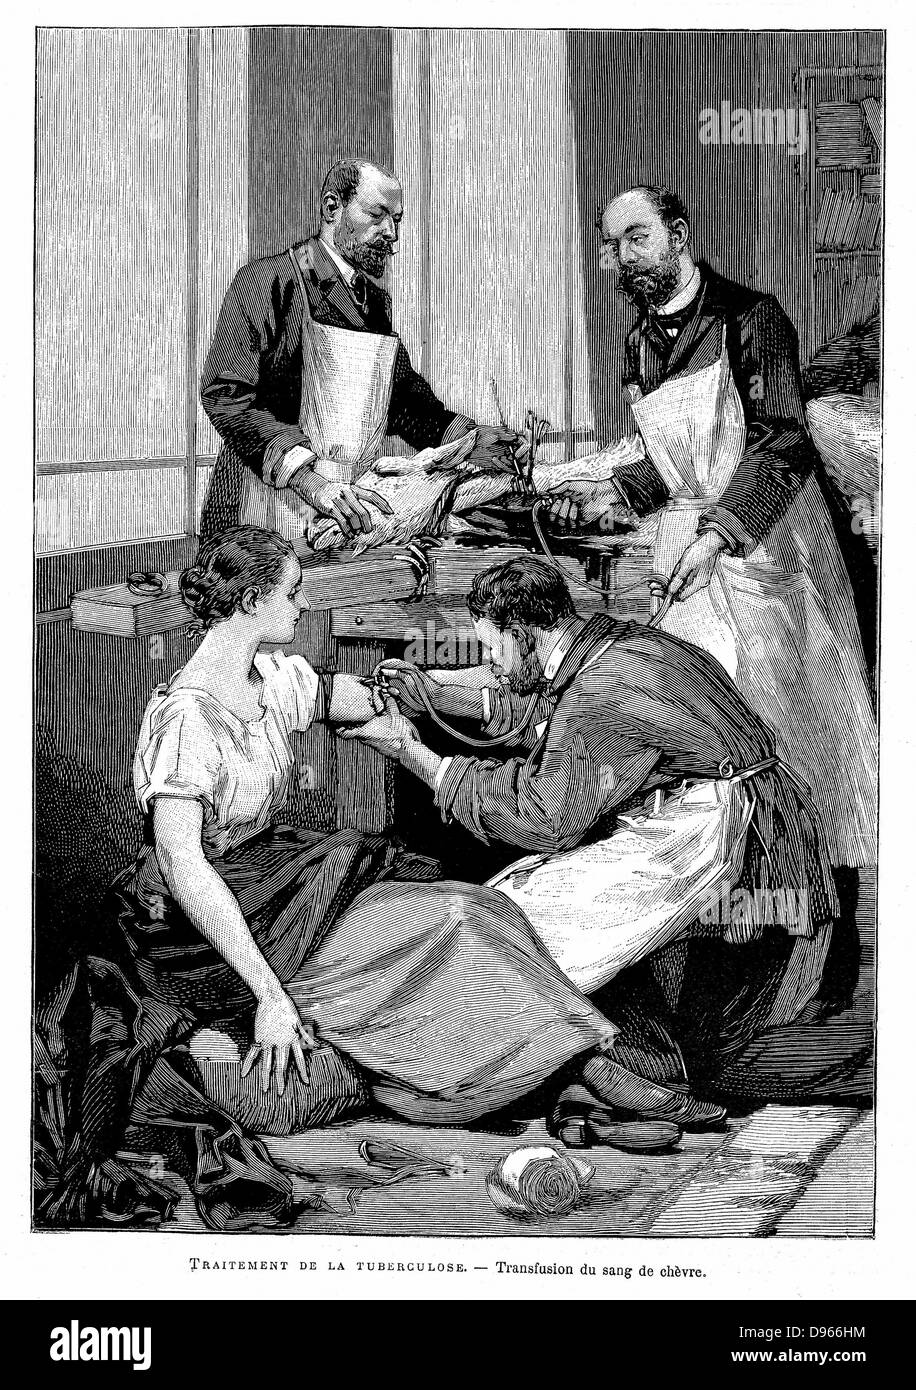 Tubercular patient being given direct blood transfusion from a goat at Dr Bernheim's clinic. Engraving, Paris, - Stock Image